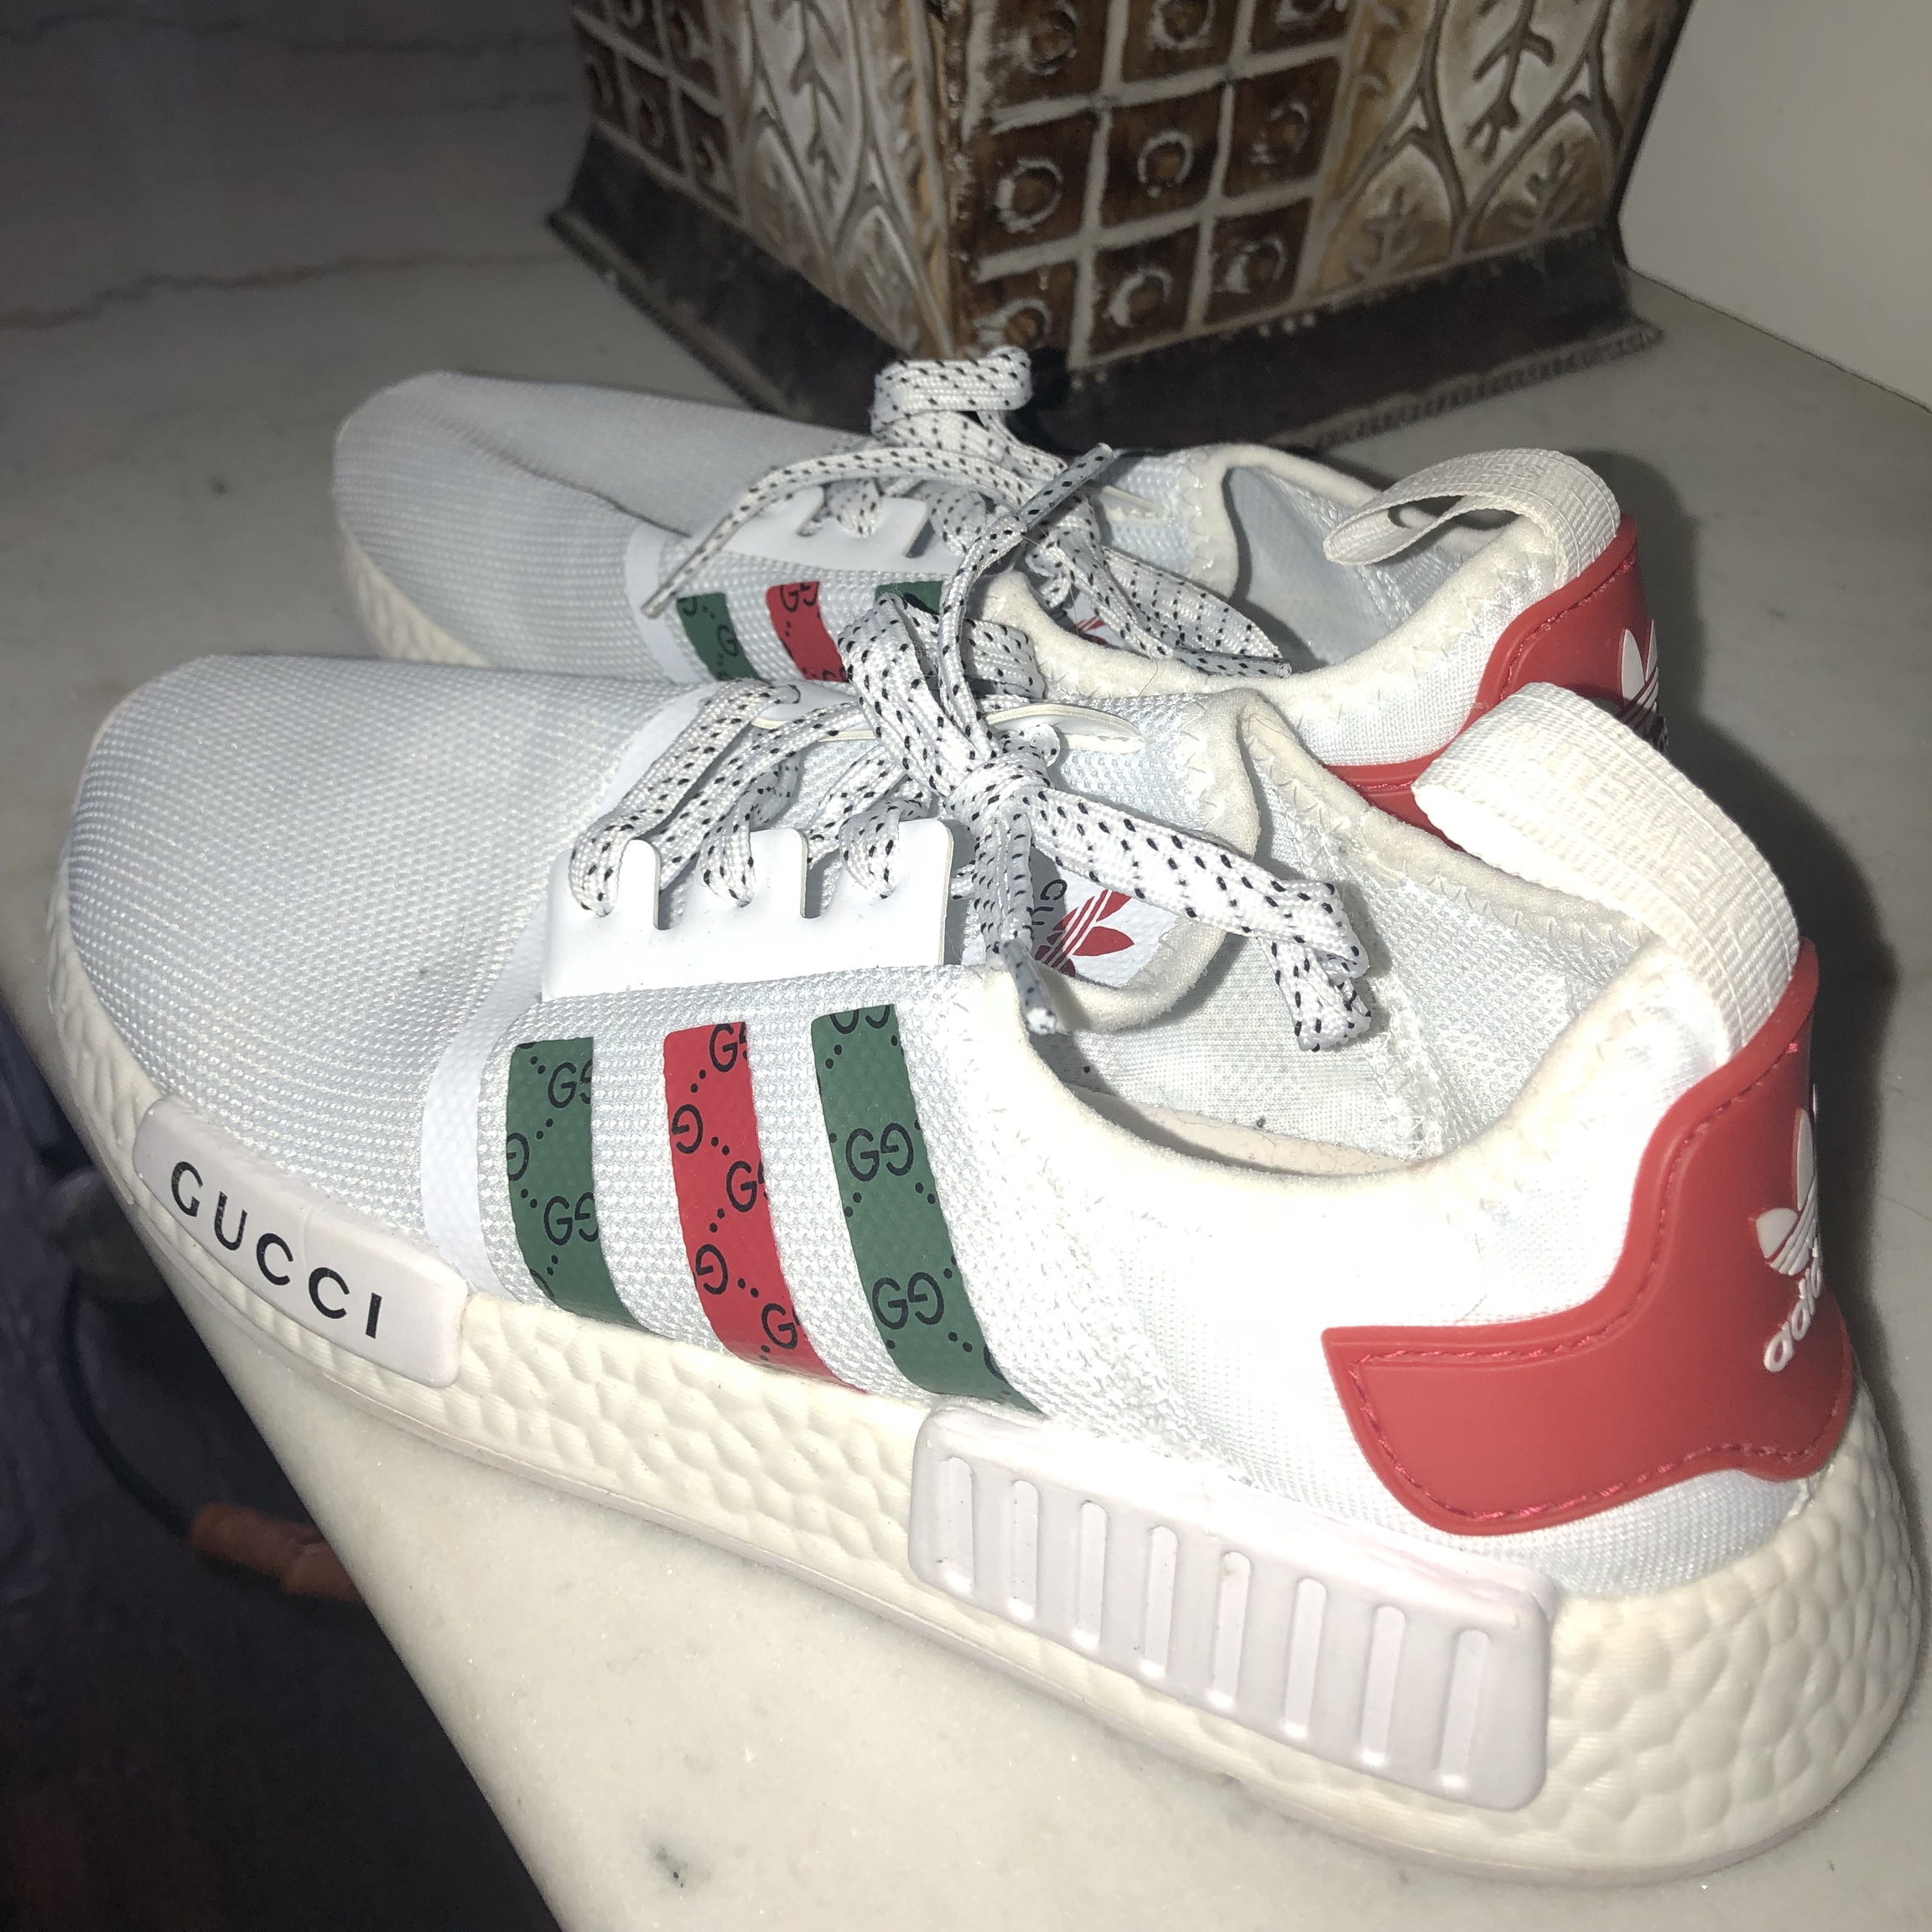 finest selection e2ab7 47fc6 Adidas x Gucci shoes. I bought these off someone... - Depop